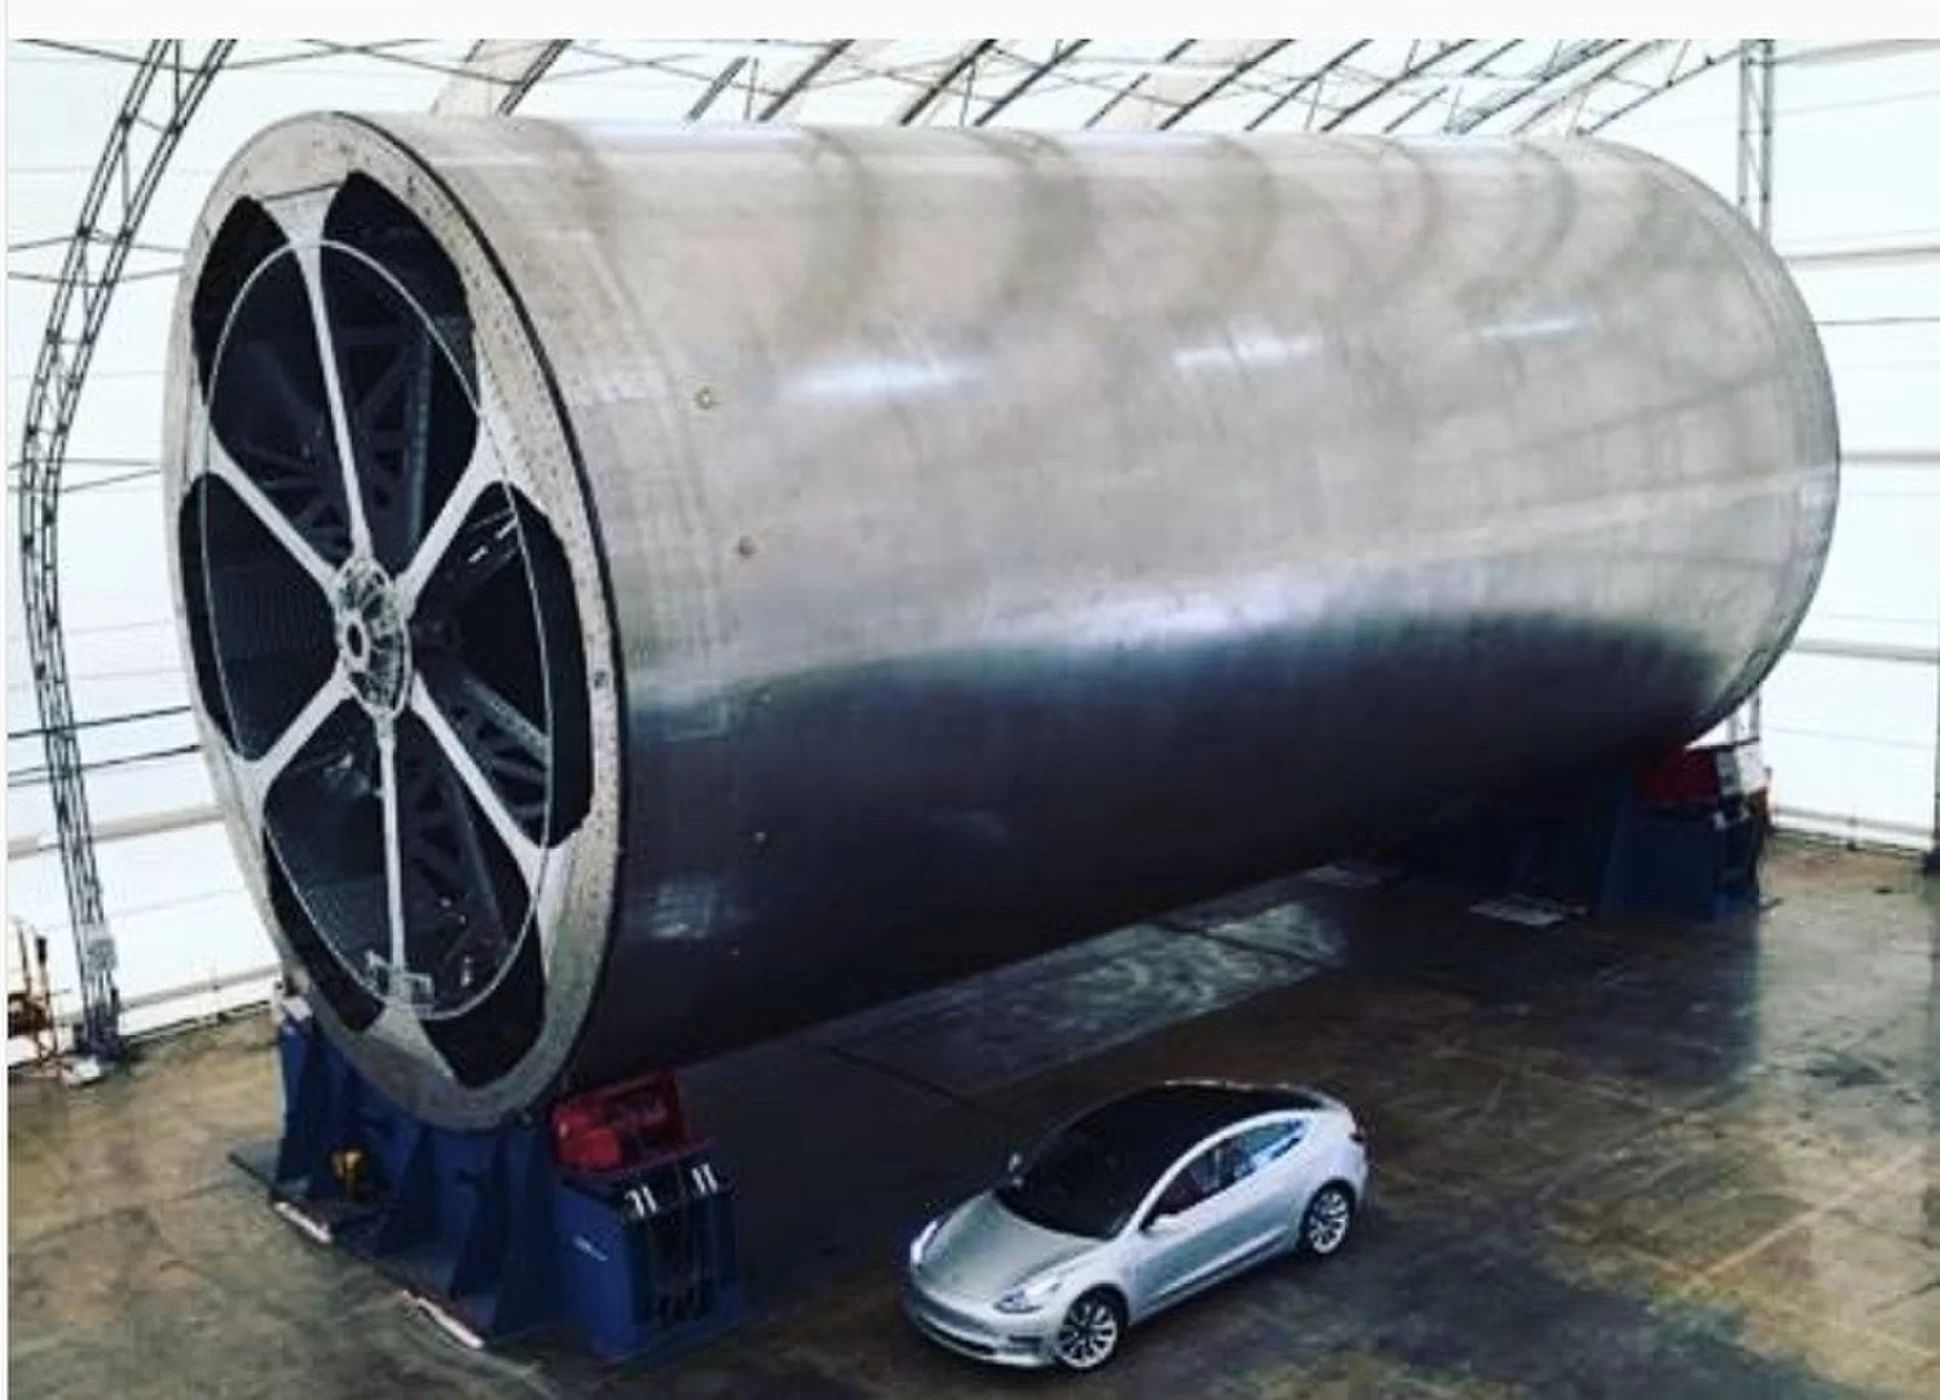 The massive BFR tool compared to a typical car. Source: Tesla/SpaceX